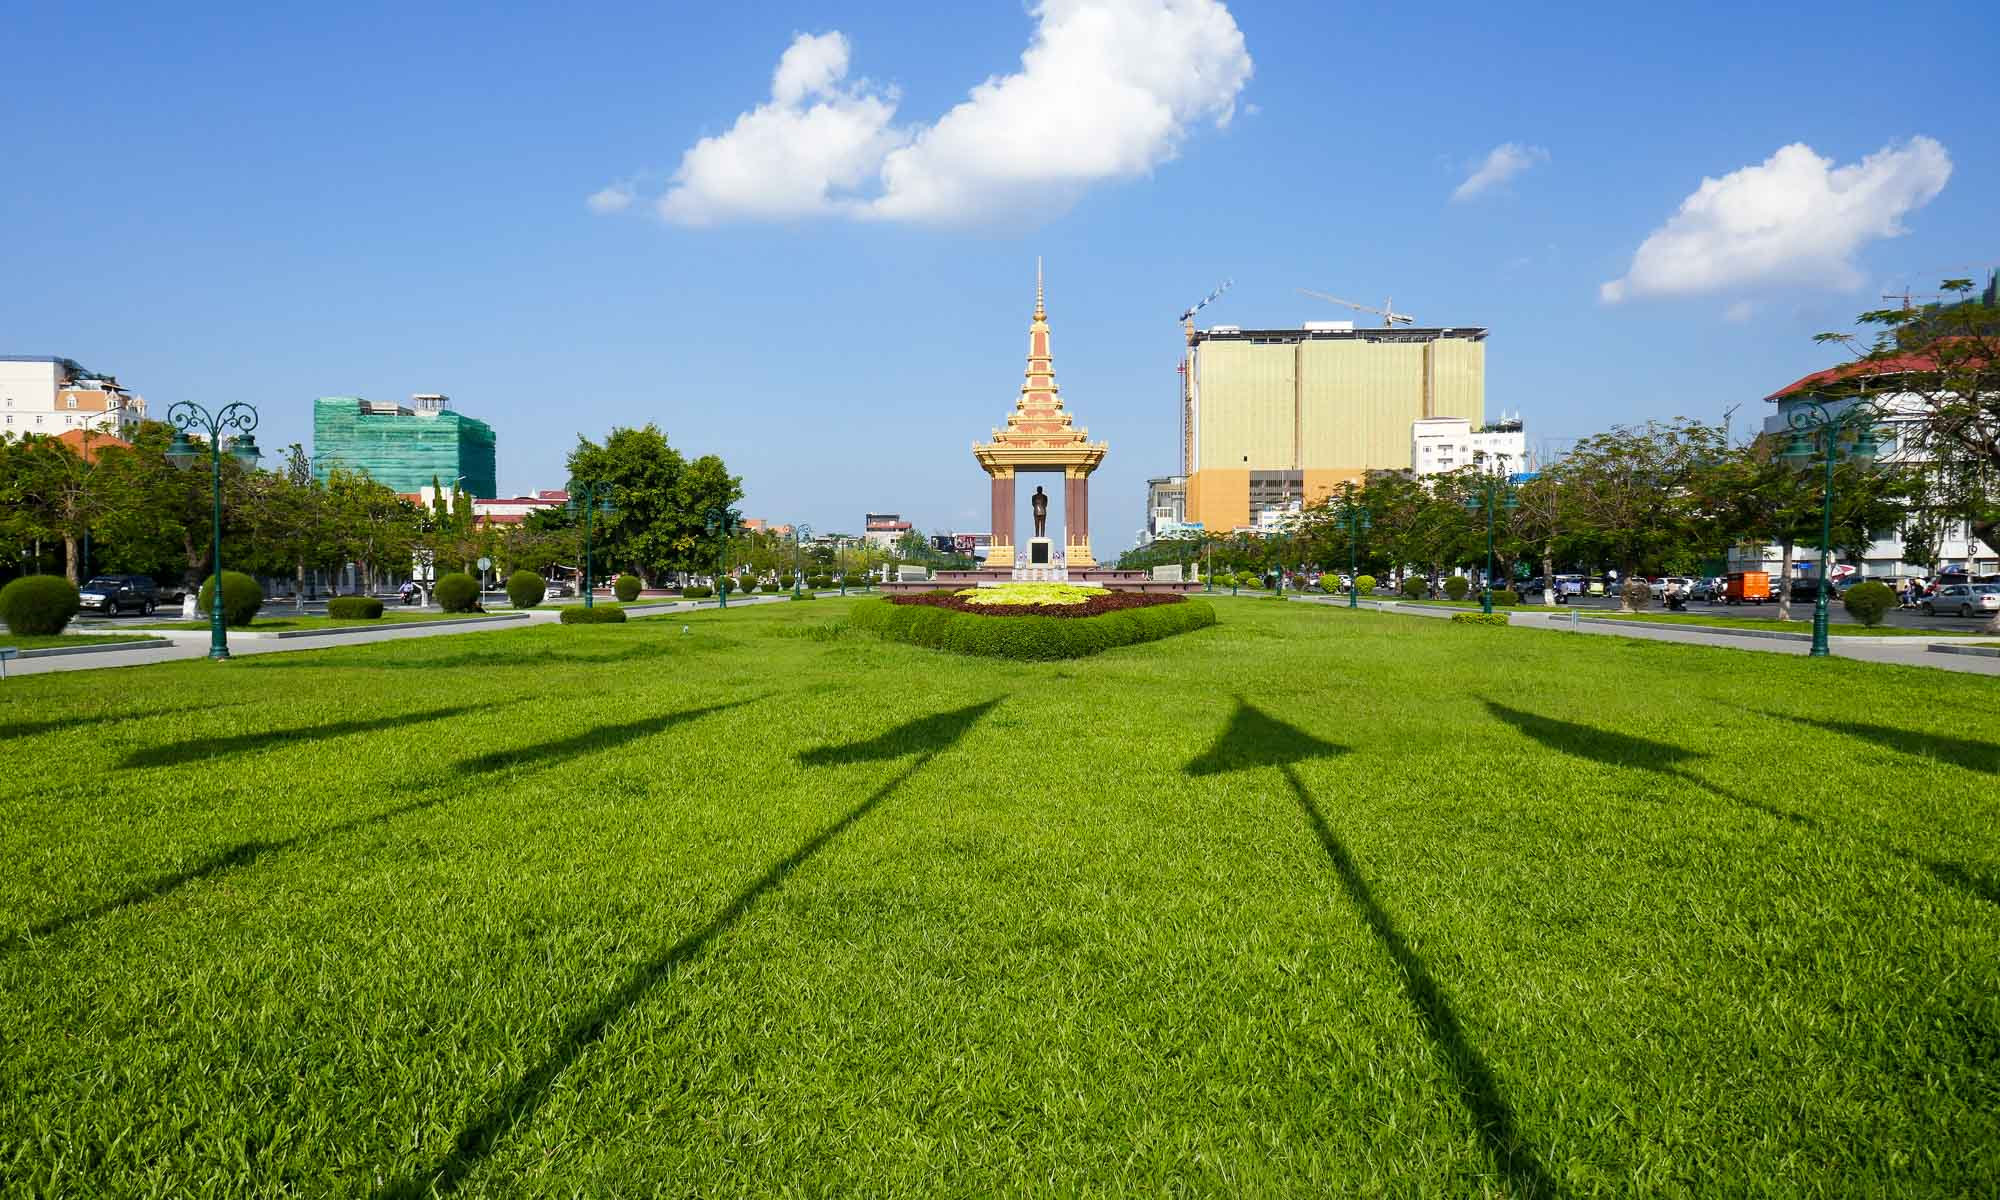 Suramarit Boulevard and the statue of Norodom Sihanouk